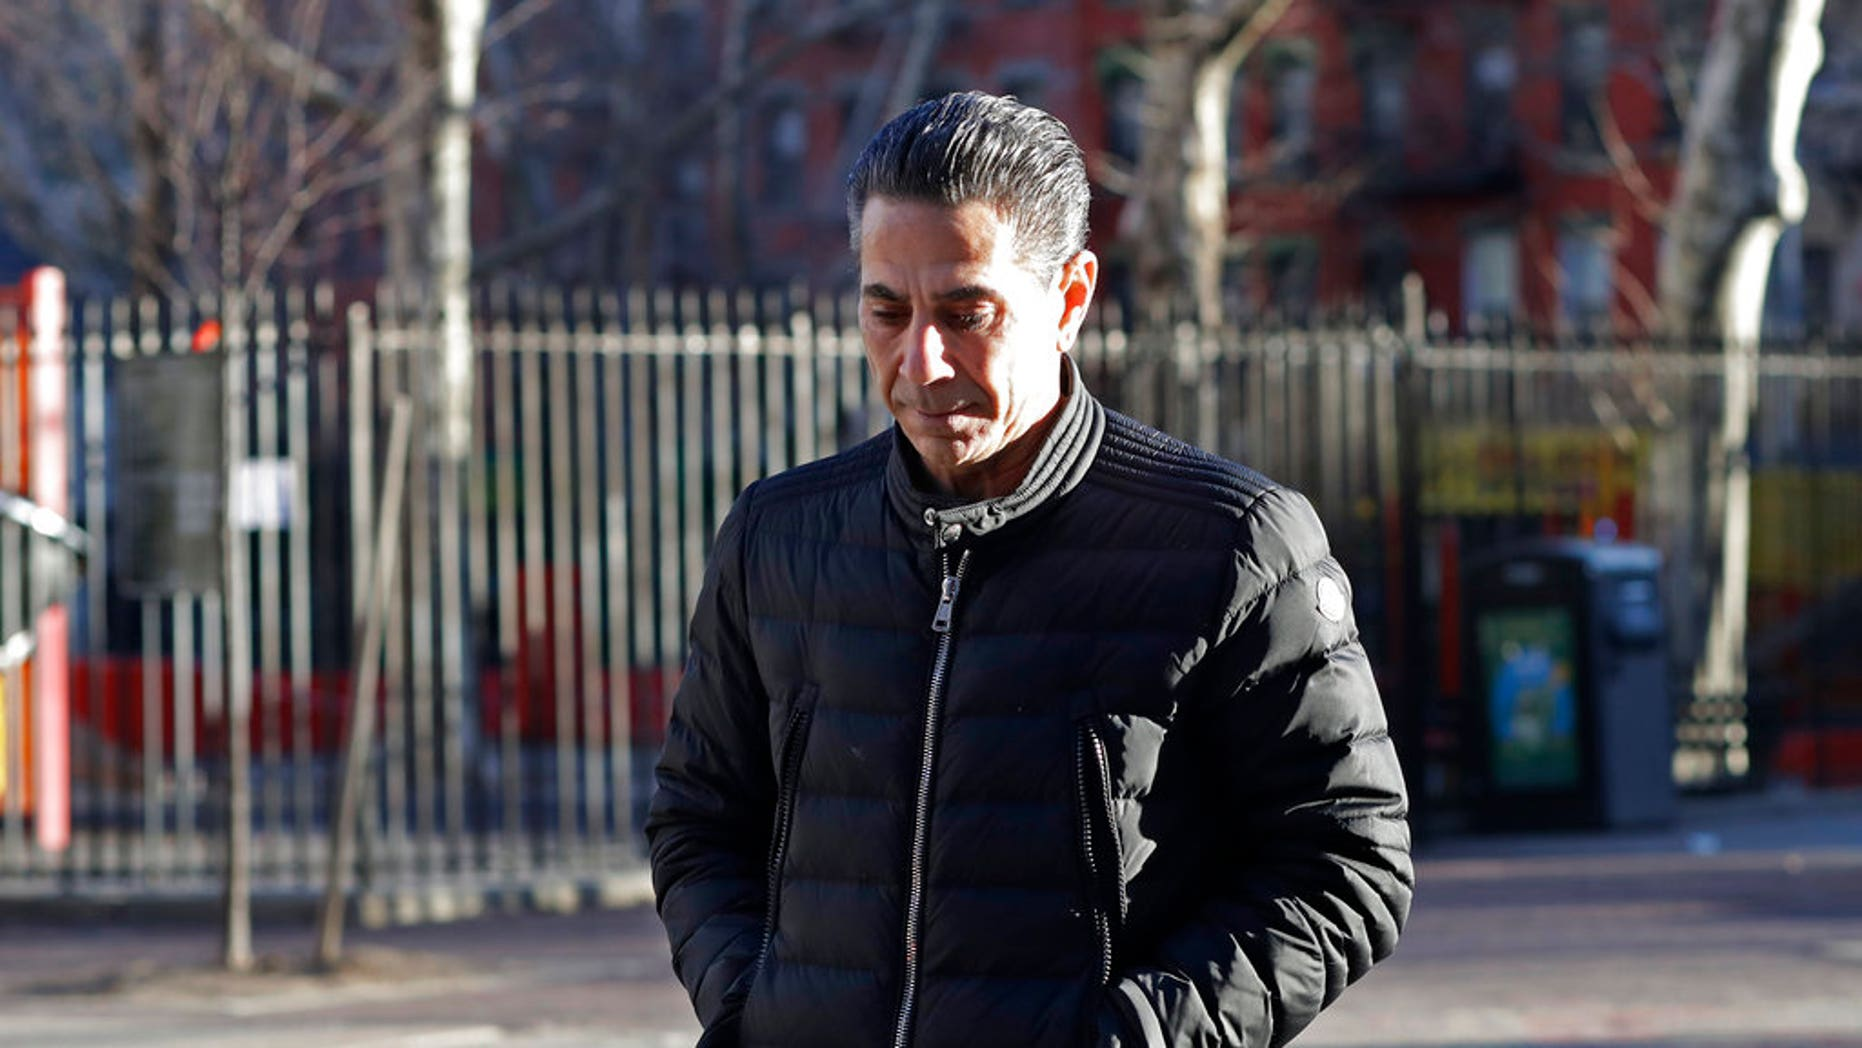 Purported mob boss and crew allegedly greet juror by name outside joseph skinny joey merlino 55 was reprimanded by a judge for greeting m4hsunfo